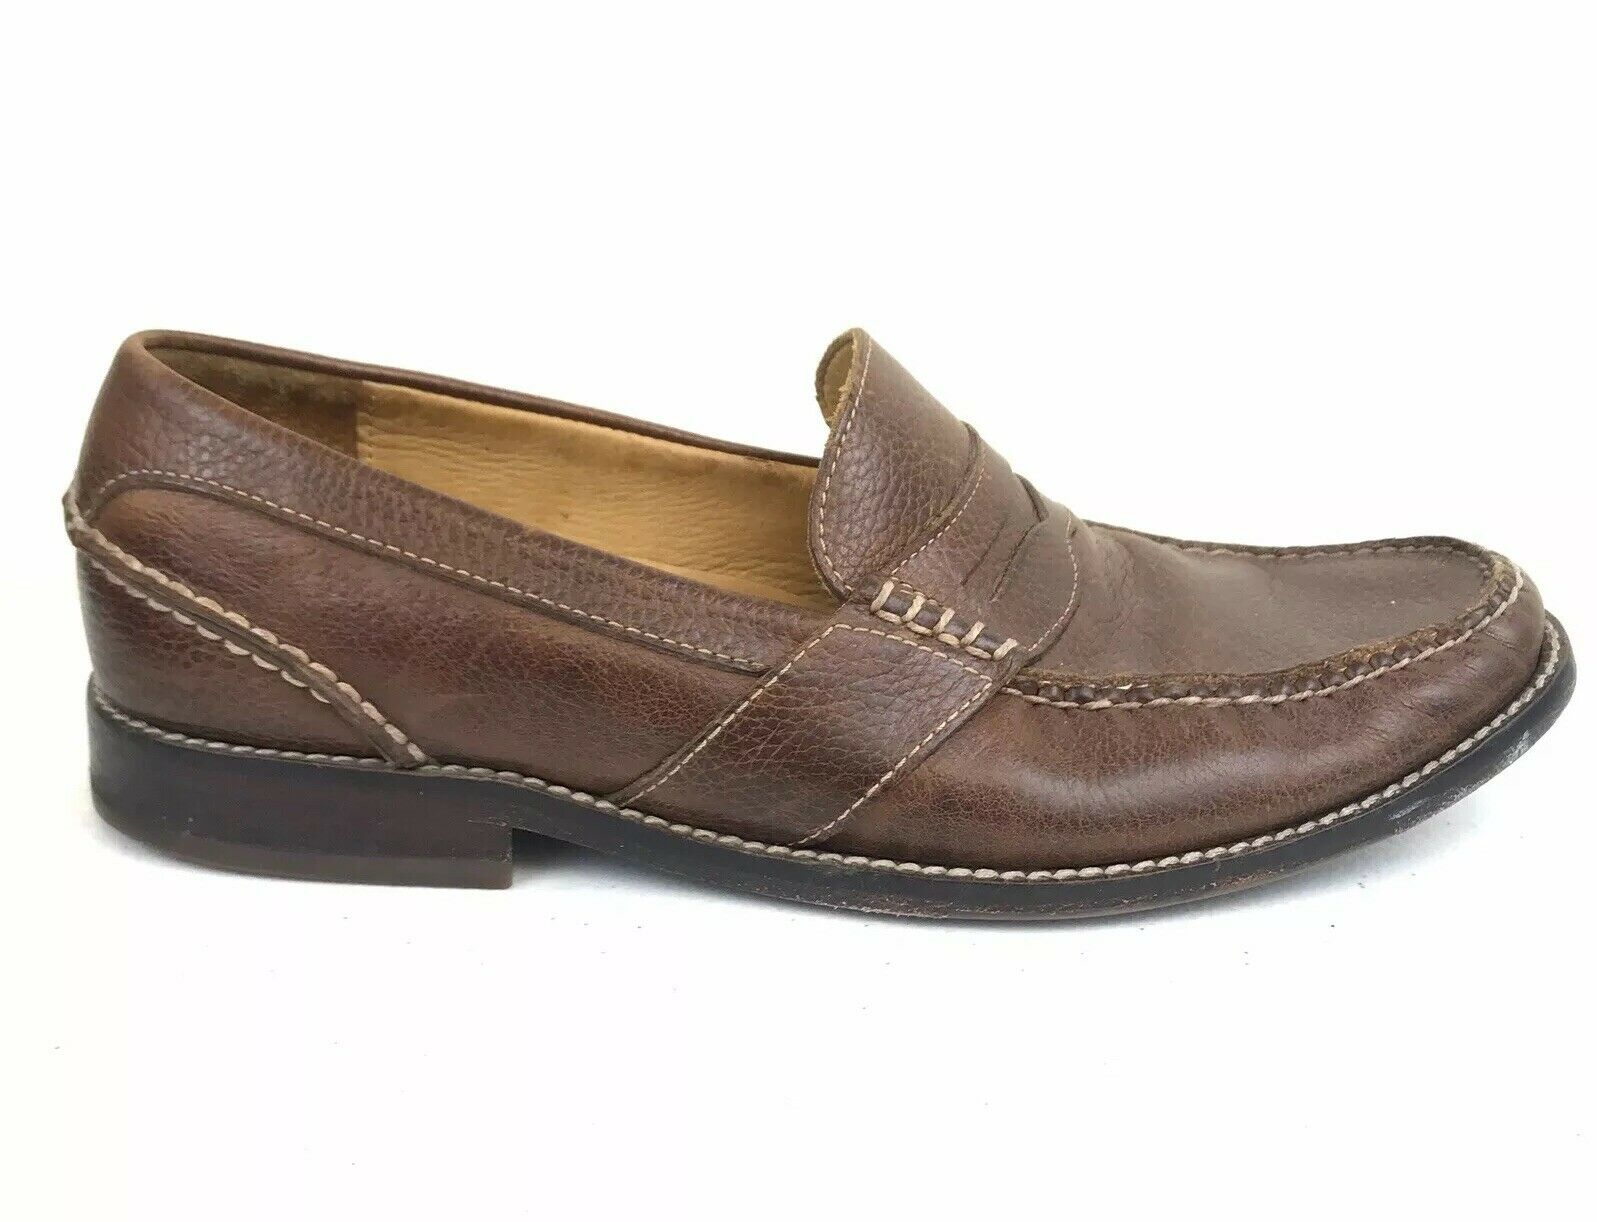 Sperry Top Sider gold Cup Leather Penny Loafer Mens Size 10.5 Brown Slip On